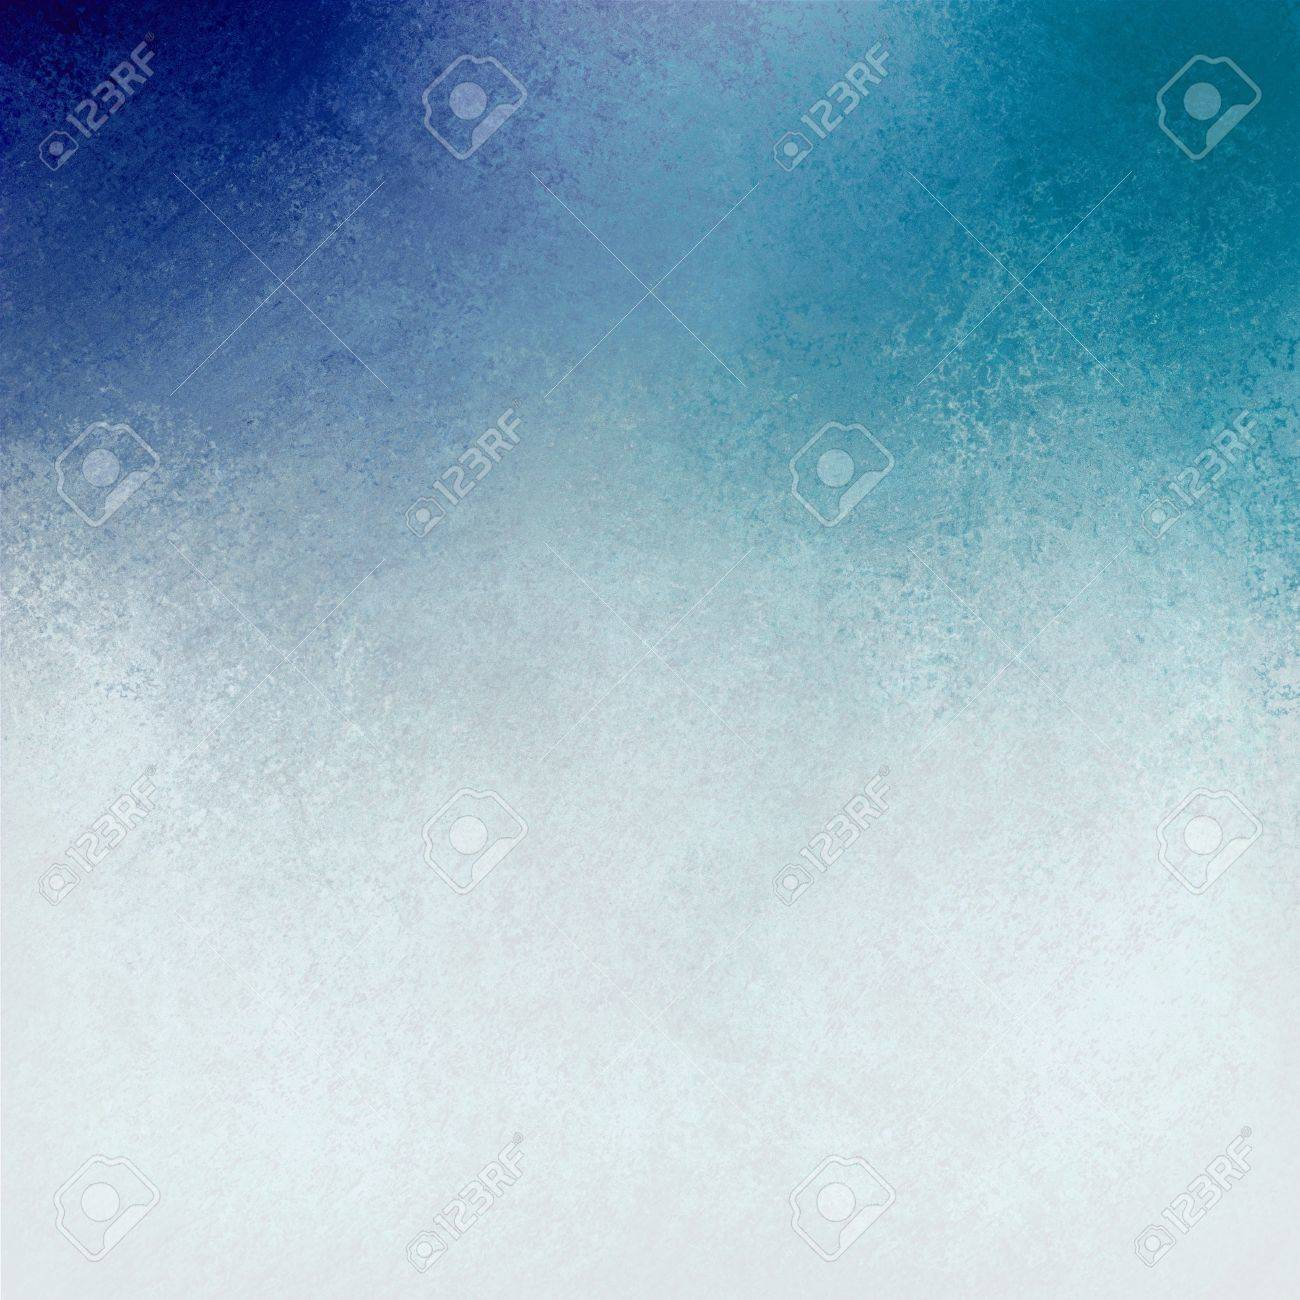 Cool Blue Paint Blue White Background Layout Blended Cool Blue And White Paint